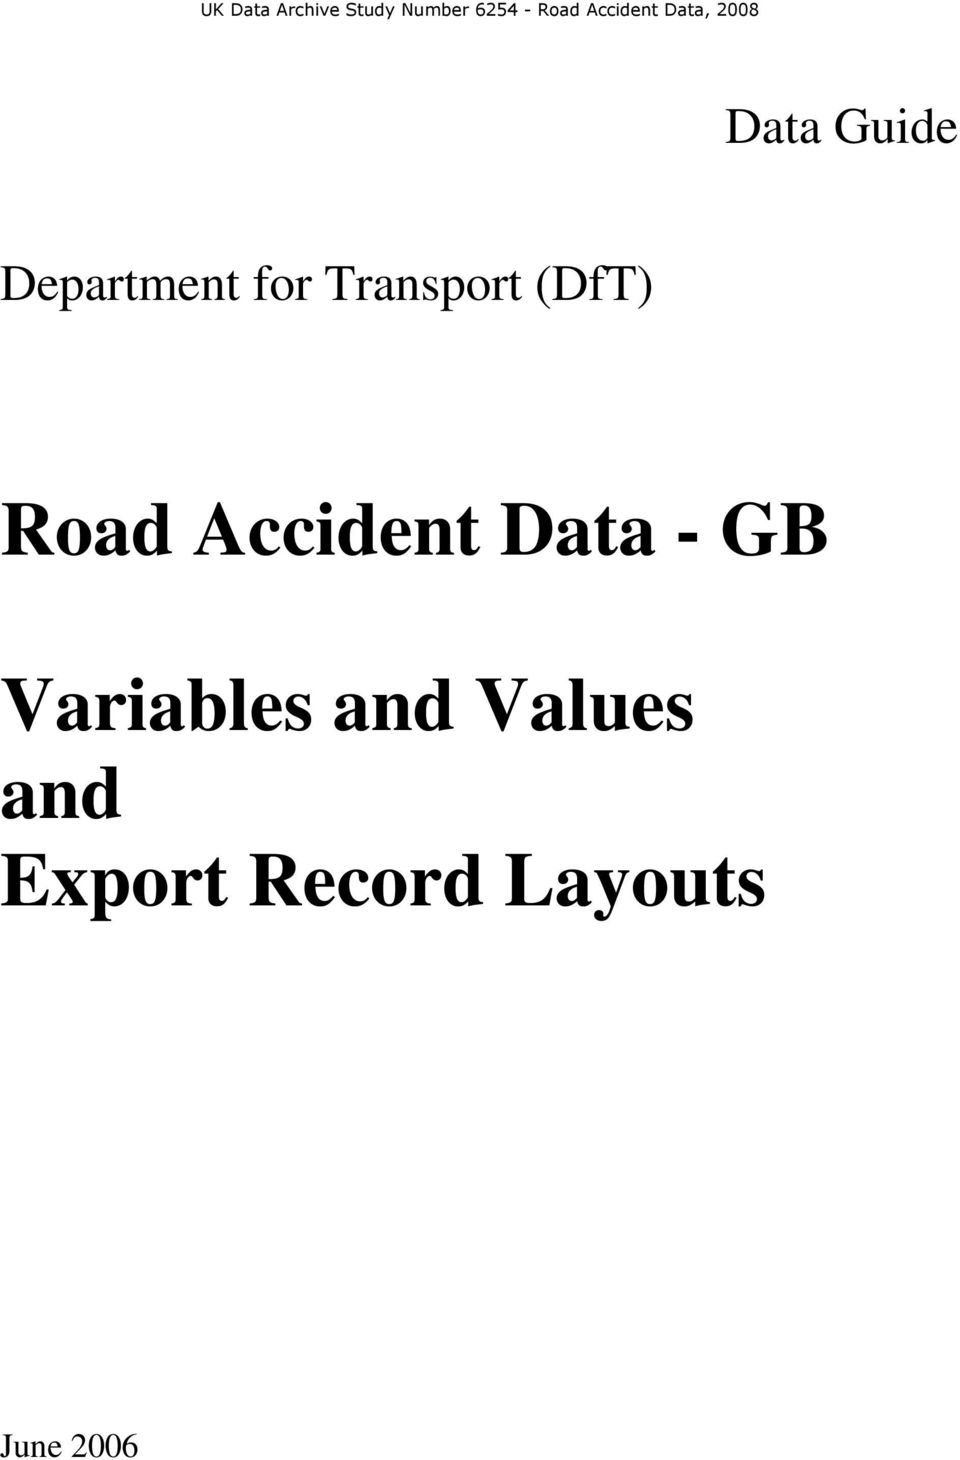 Transport (DfT) Road Accident Data - GB